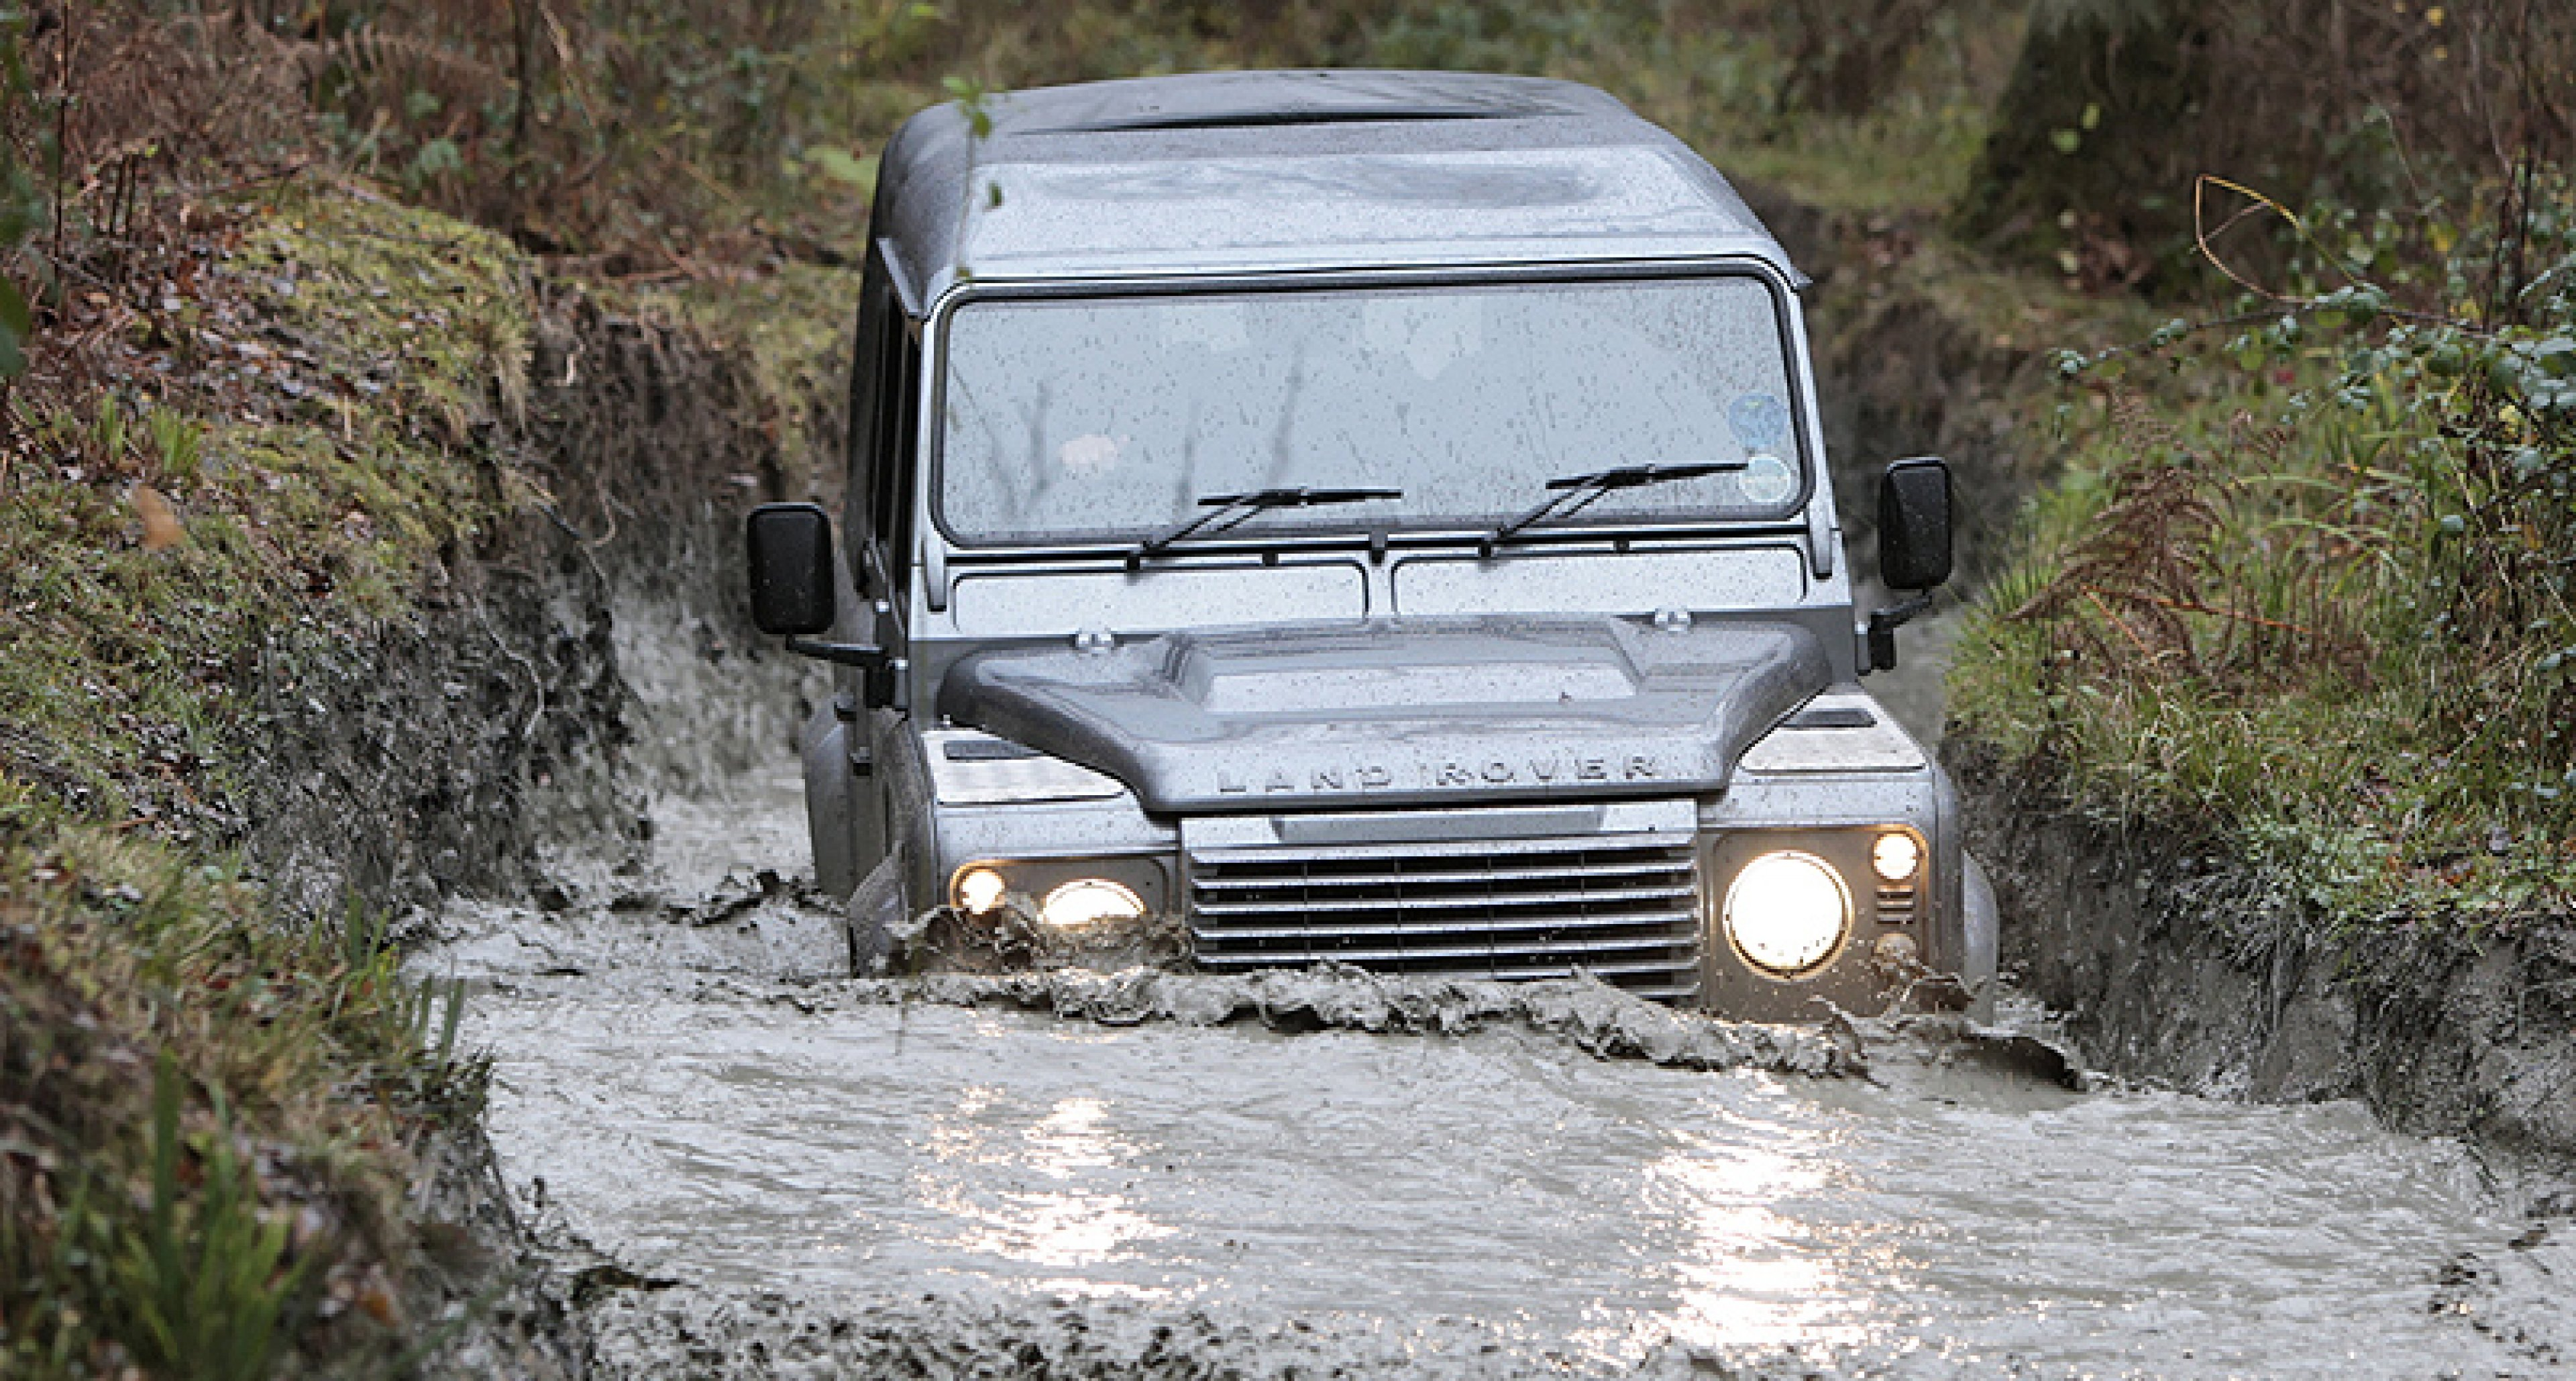 Land Rovers old and new: 50 years of off-road testing at Eastnor Castle